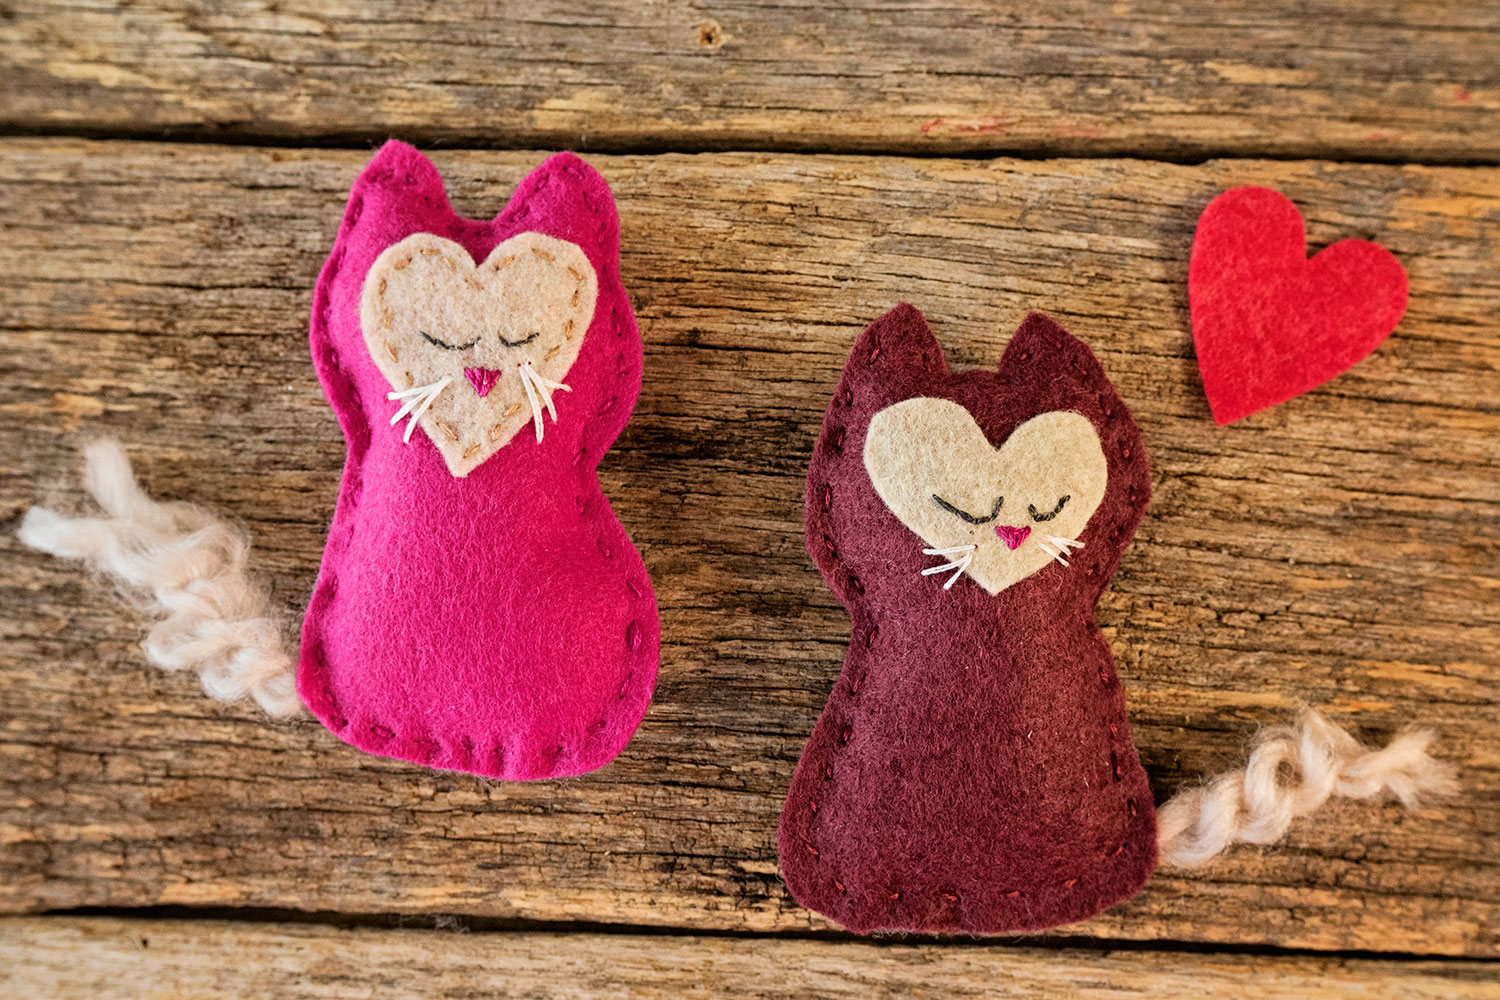 two hand sewn felt kittens together with a felt hear cut out